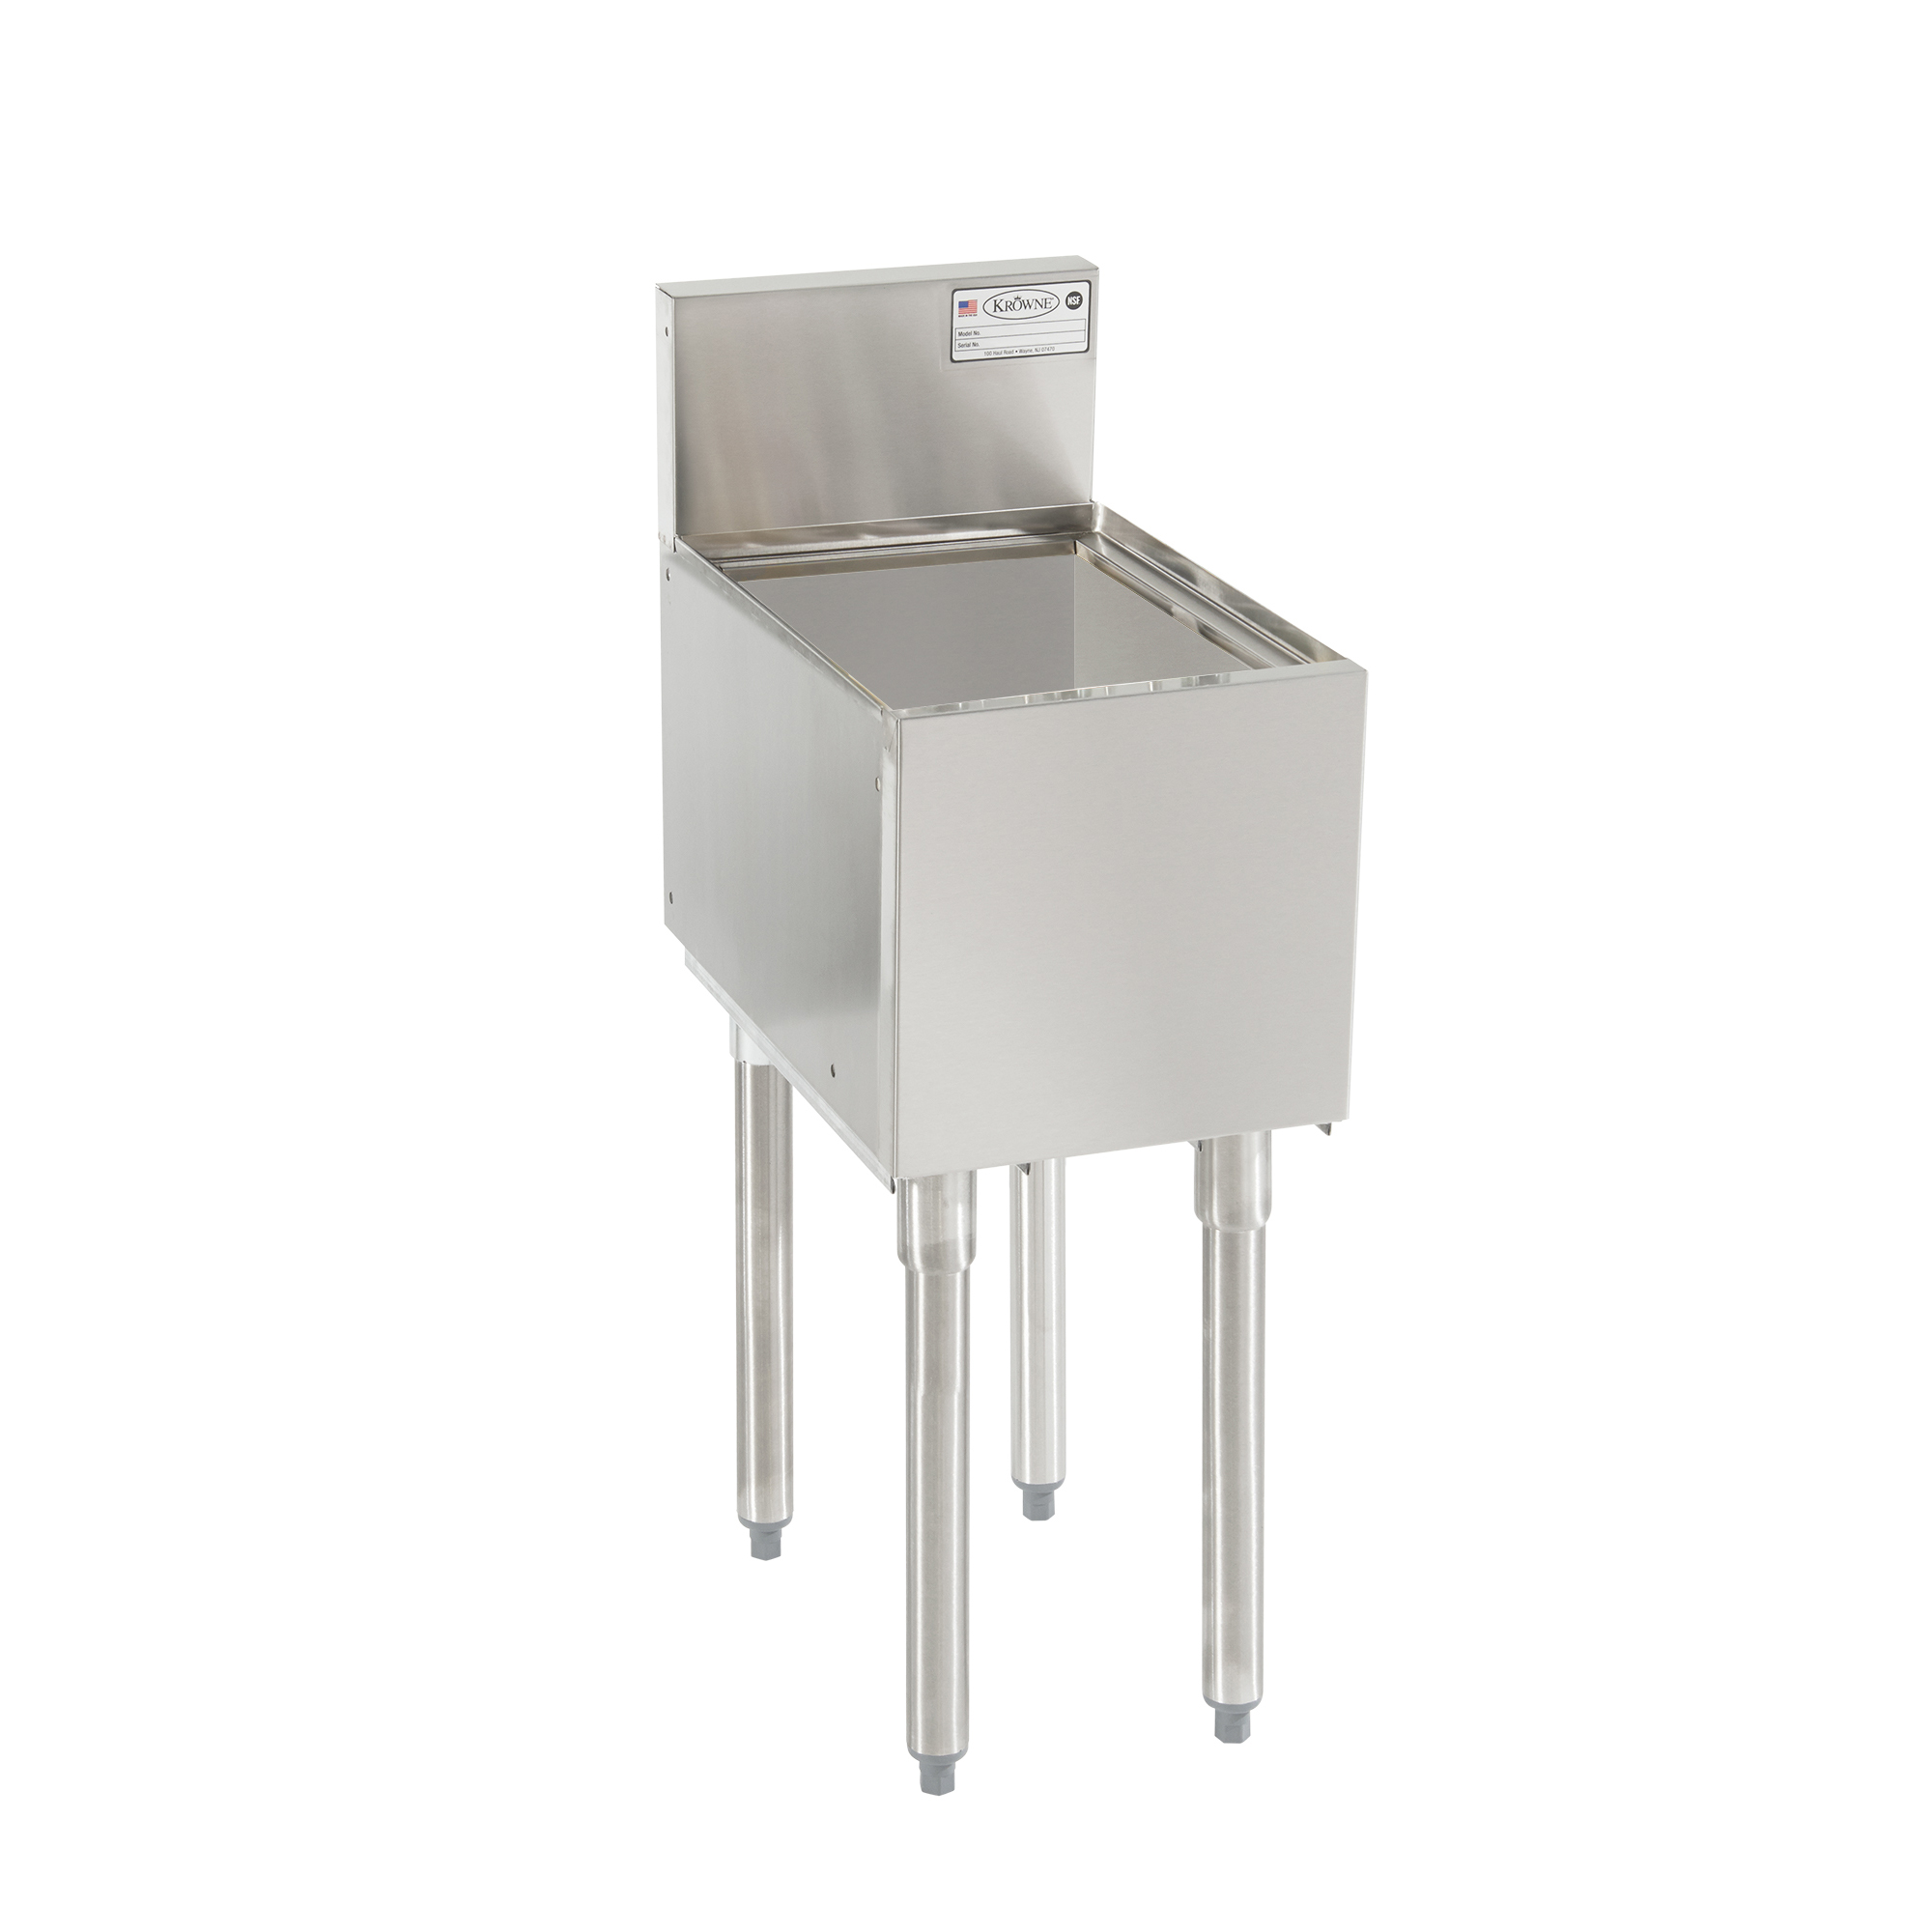 Krowne Metal KR19-8 underbar ice bin/cocktail unit